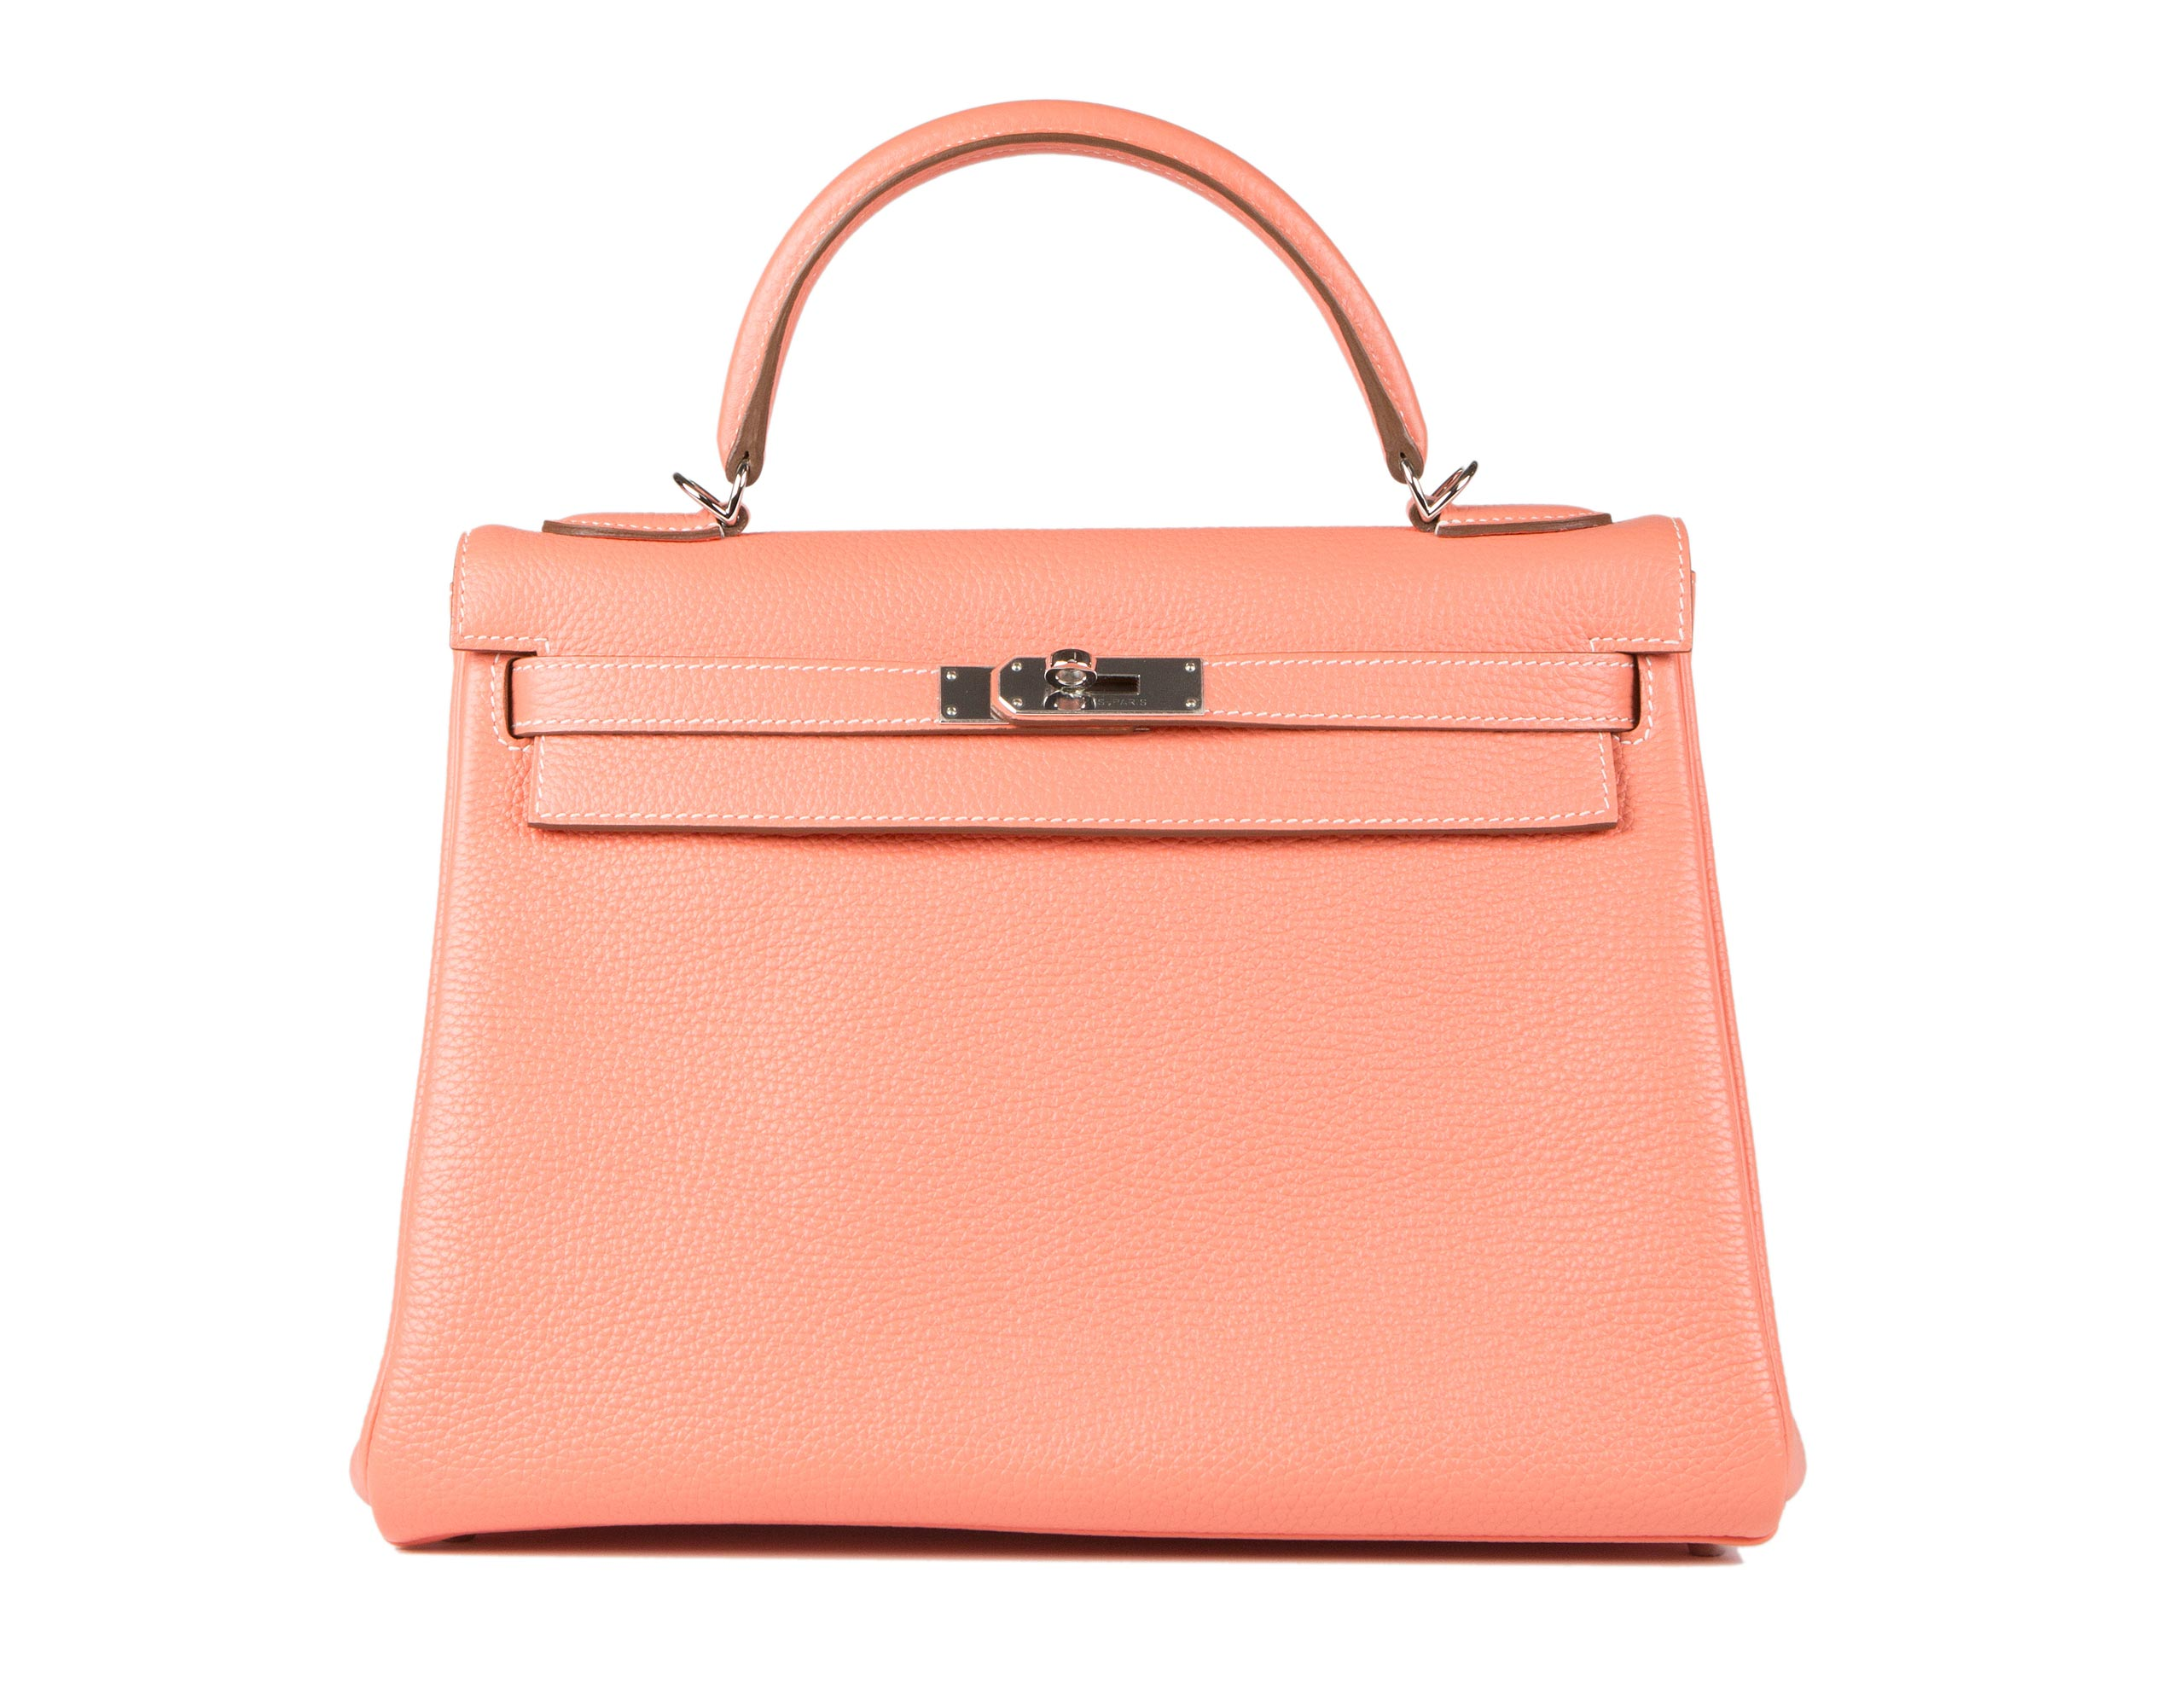 Hermes Kelly Bag Crevette Togo With Palladium 32cm front